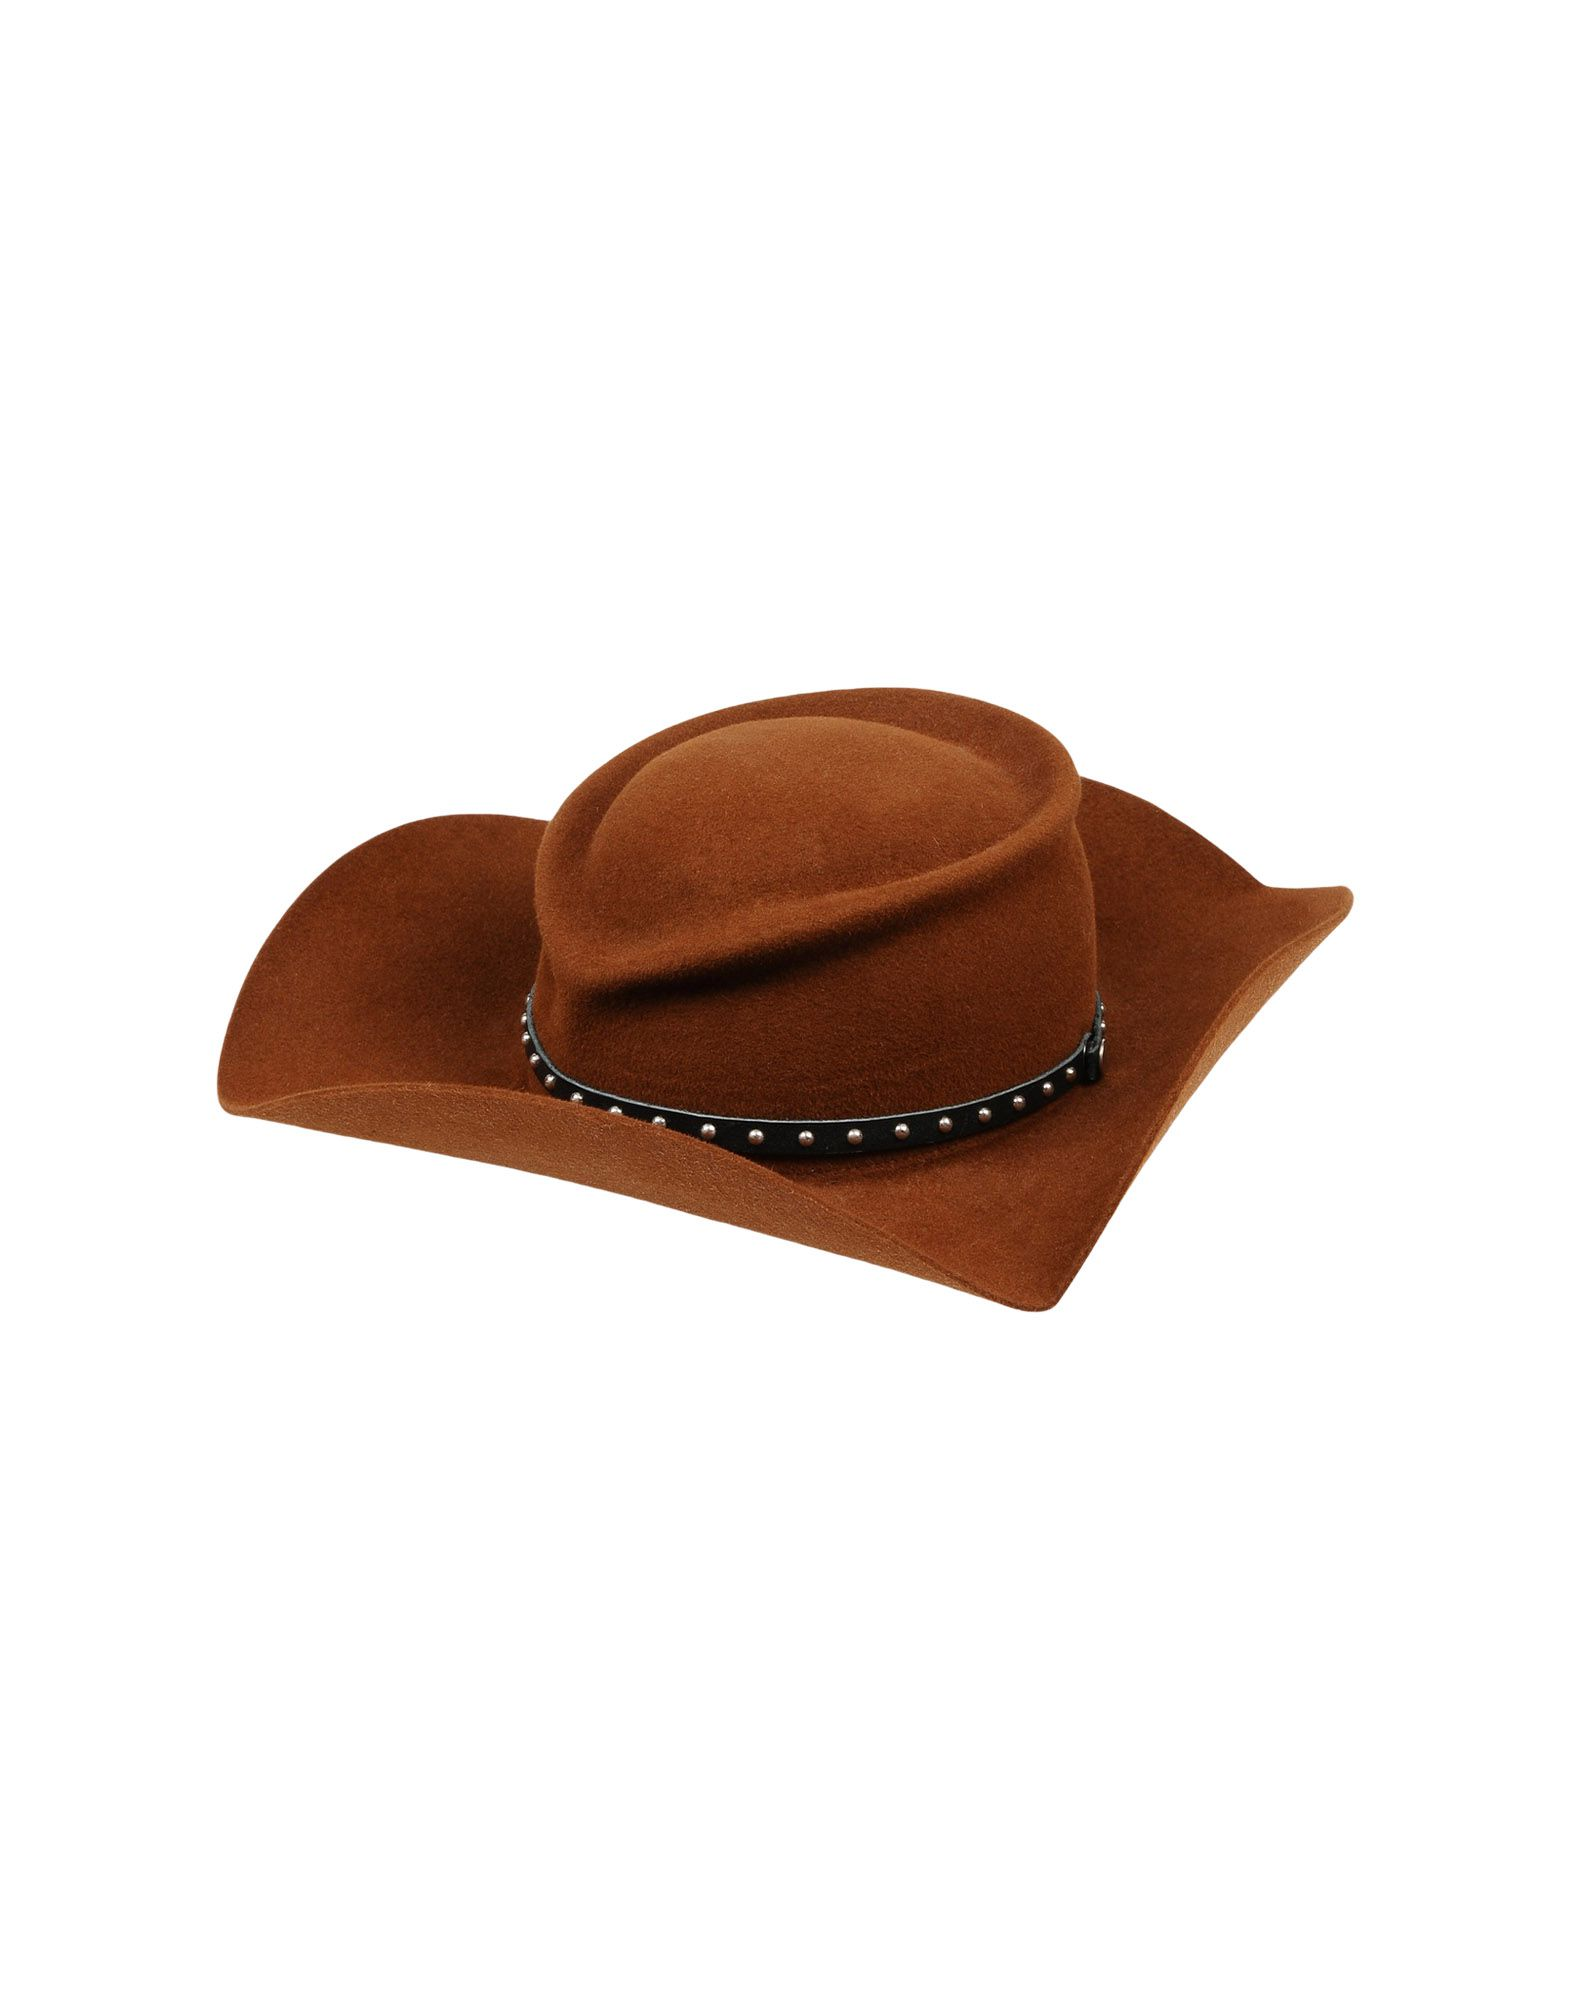 GLADYS TAMEZ Hat in Brown